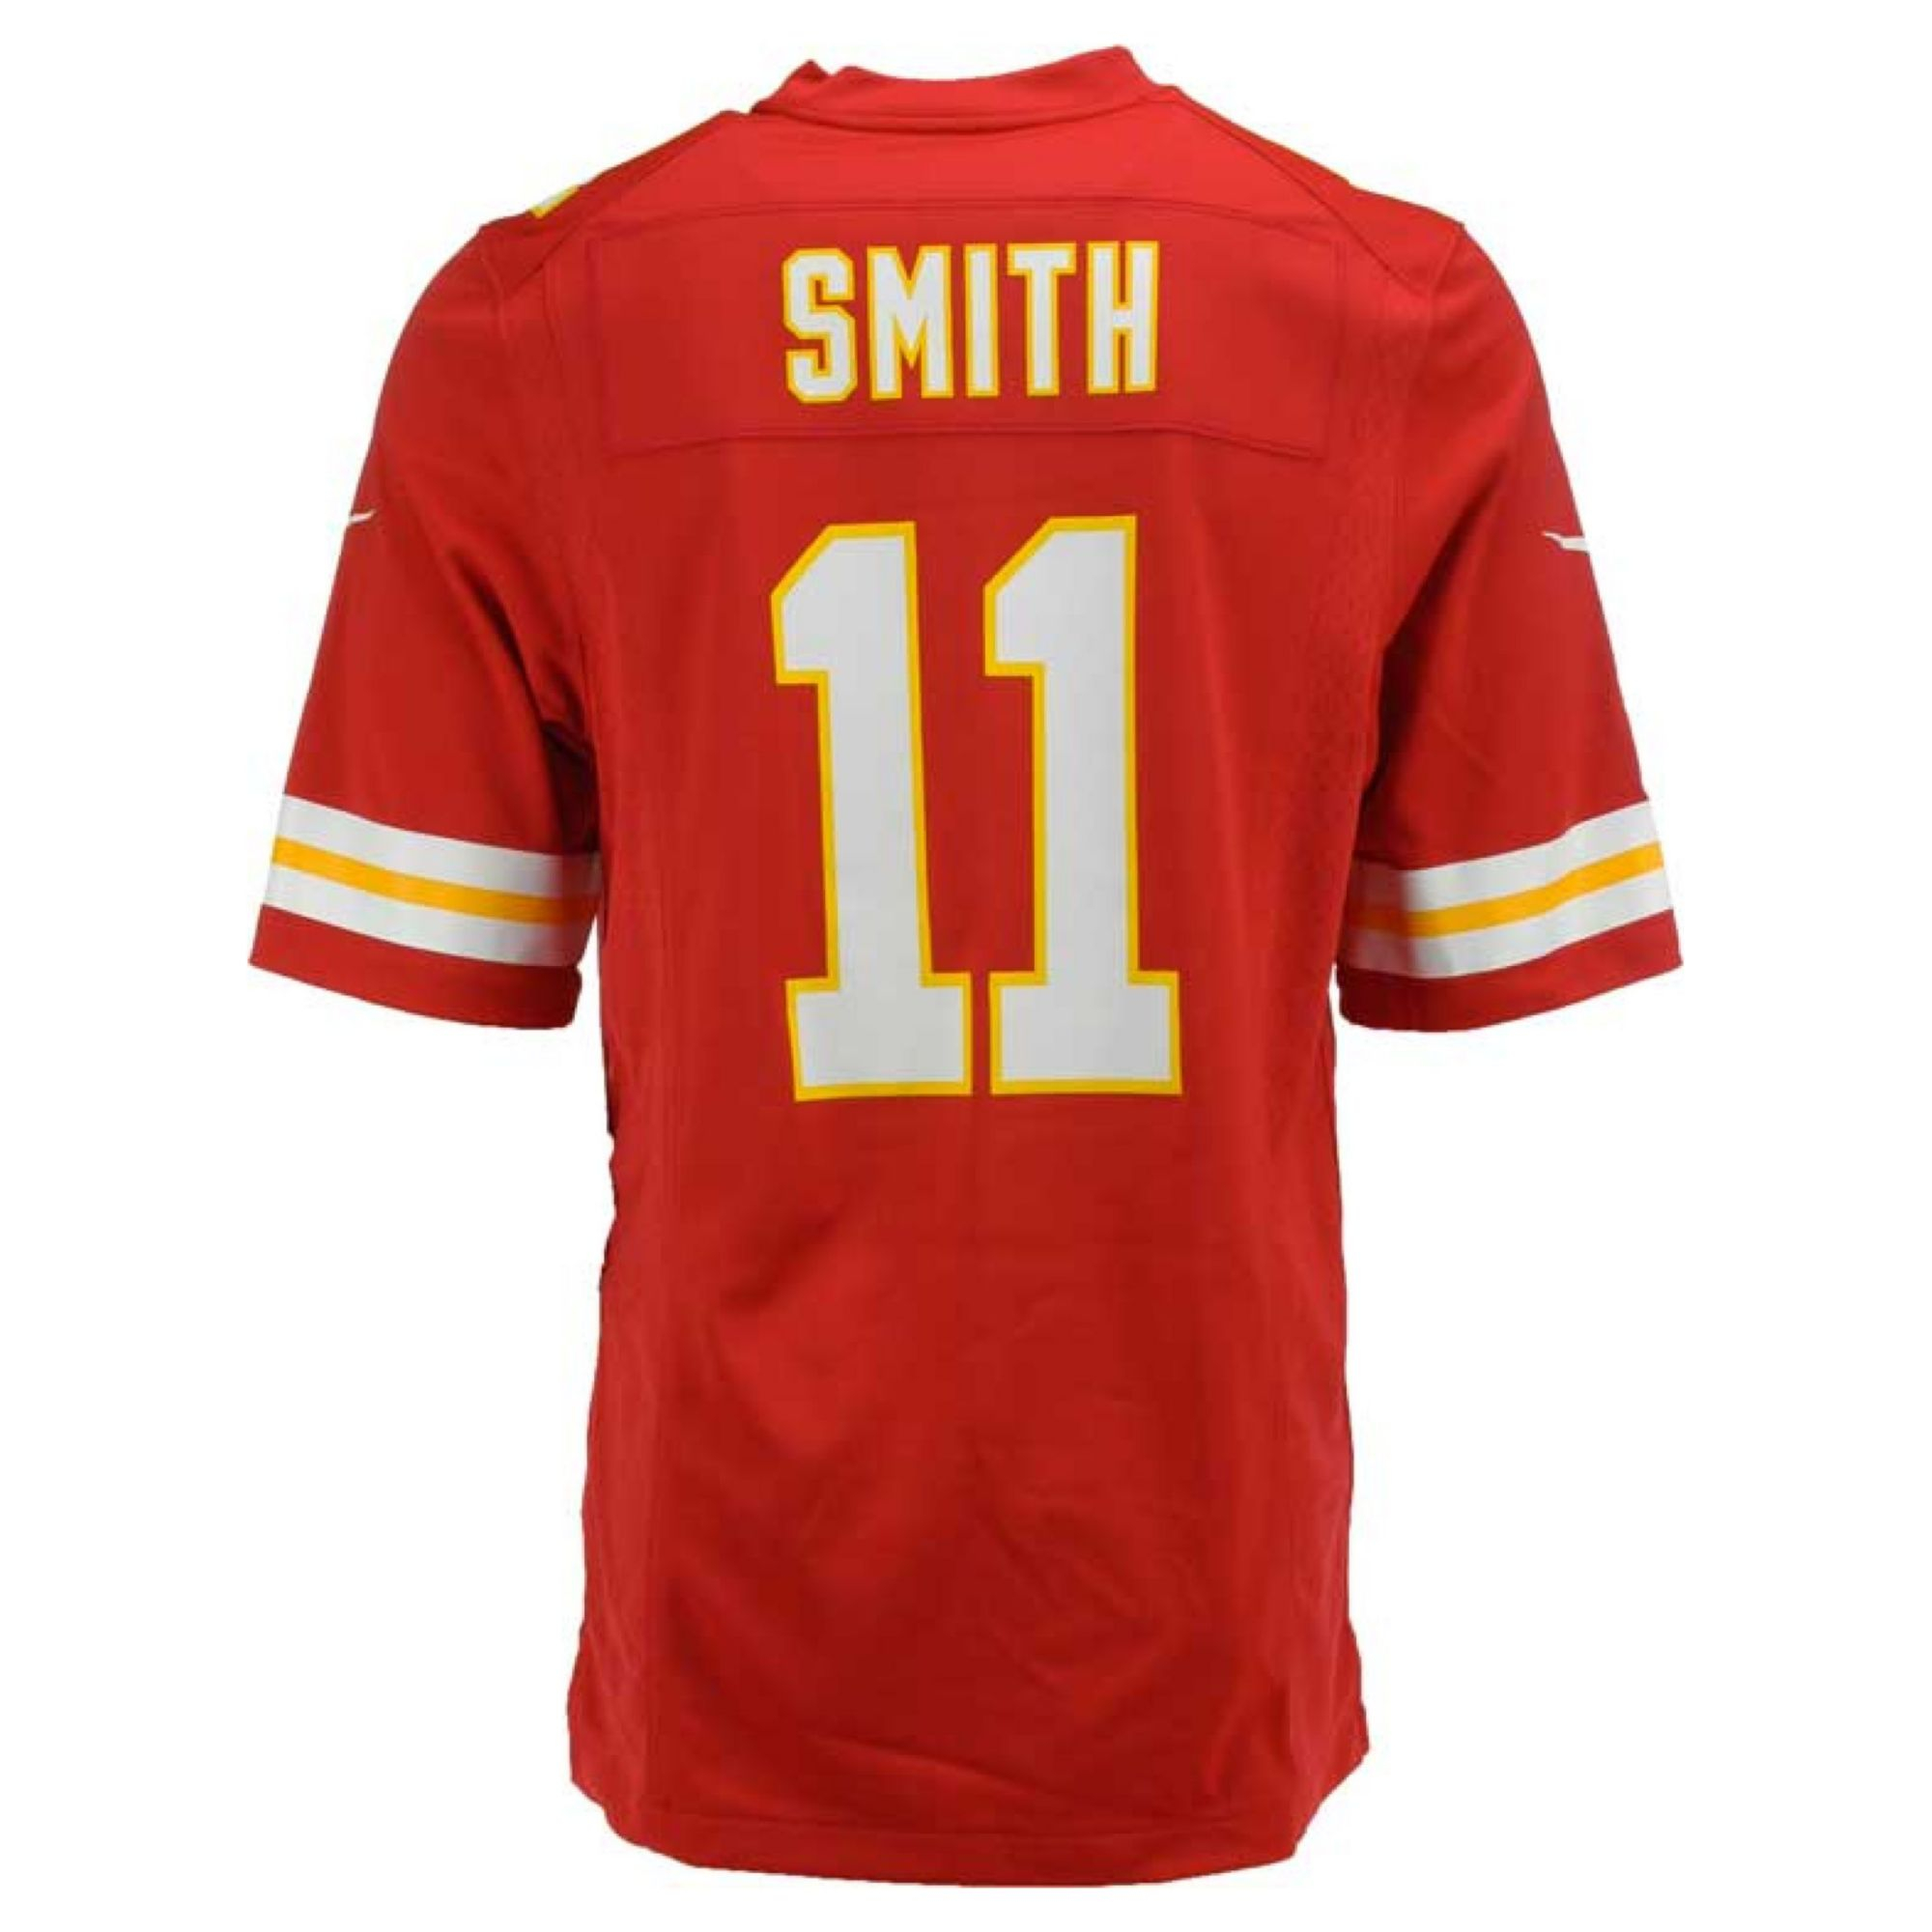 Buy Wholesale jerseys china directly from China factory, including Nike NFL Jerseys, NFL Jerseys, MLB Jerseys, NBA Jerseys, NHL Jerseys and NCAA Jerseys. Wholesale china jerseys free shipping supply price, best quality and quick door-to-door delivery.